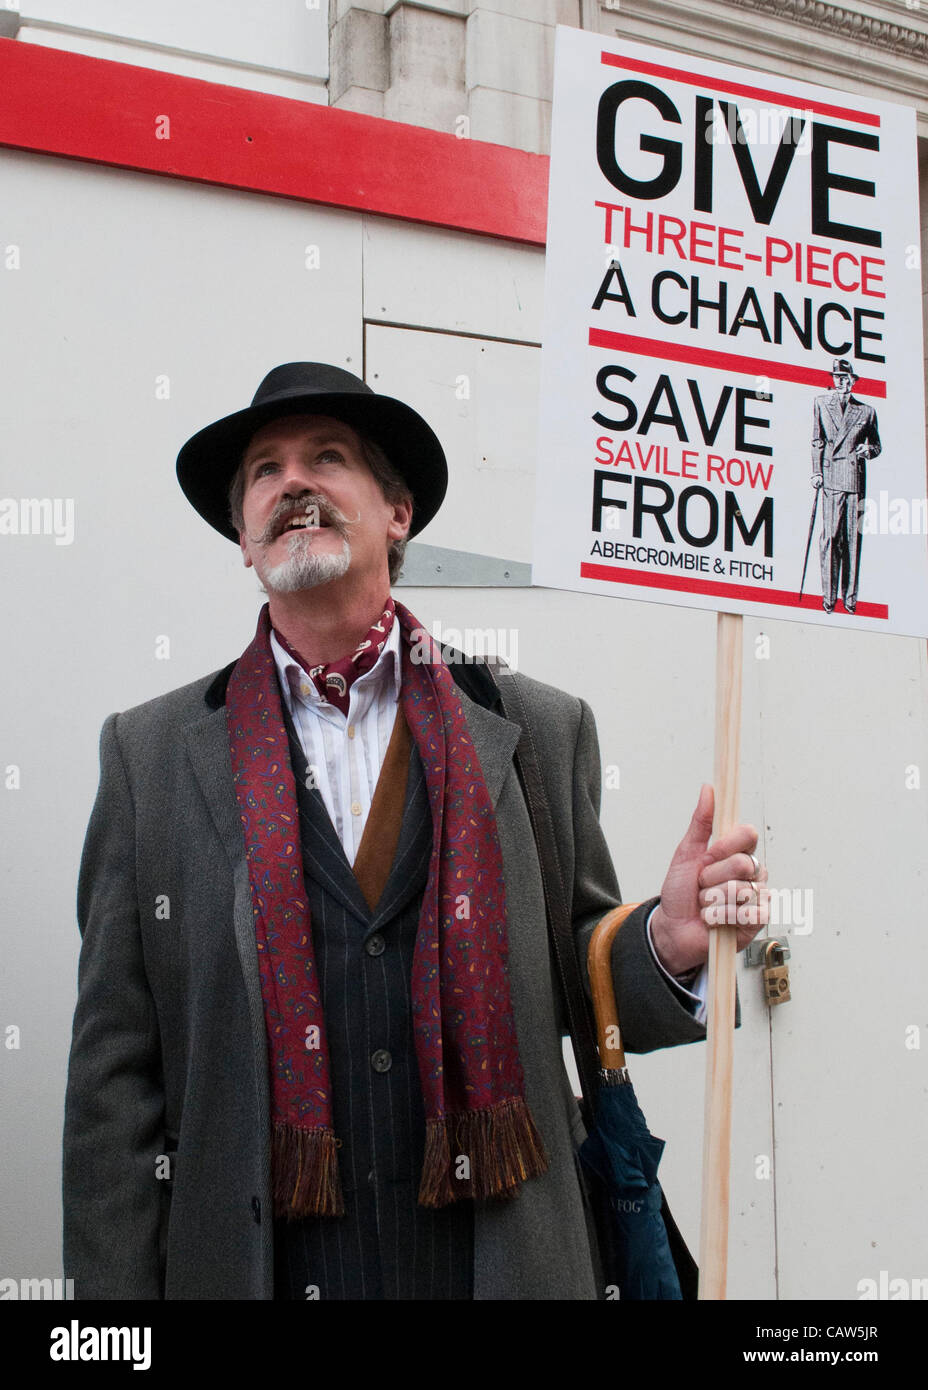 London, UK. 23/04/12. Chaps and Chapette's from the New Sheridan Club holding their St George's Day protest - Stock Image